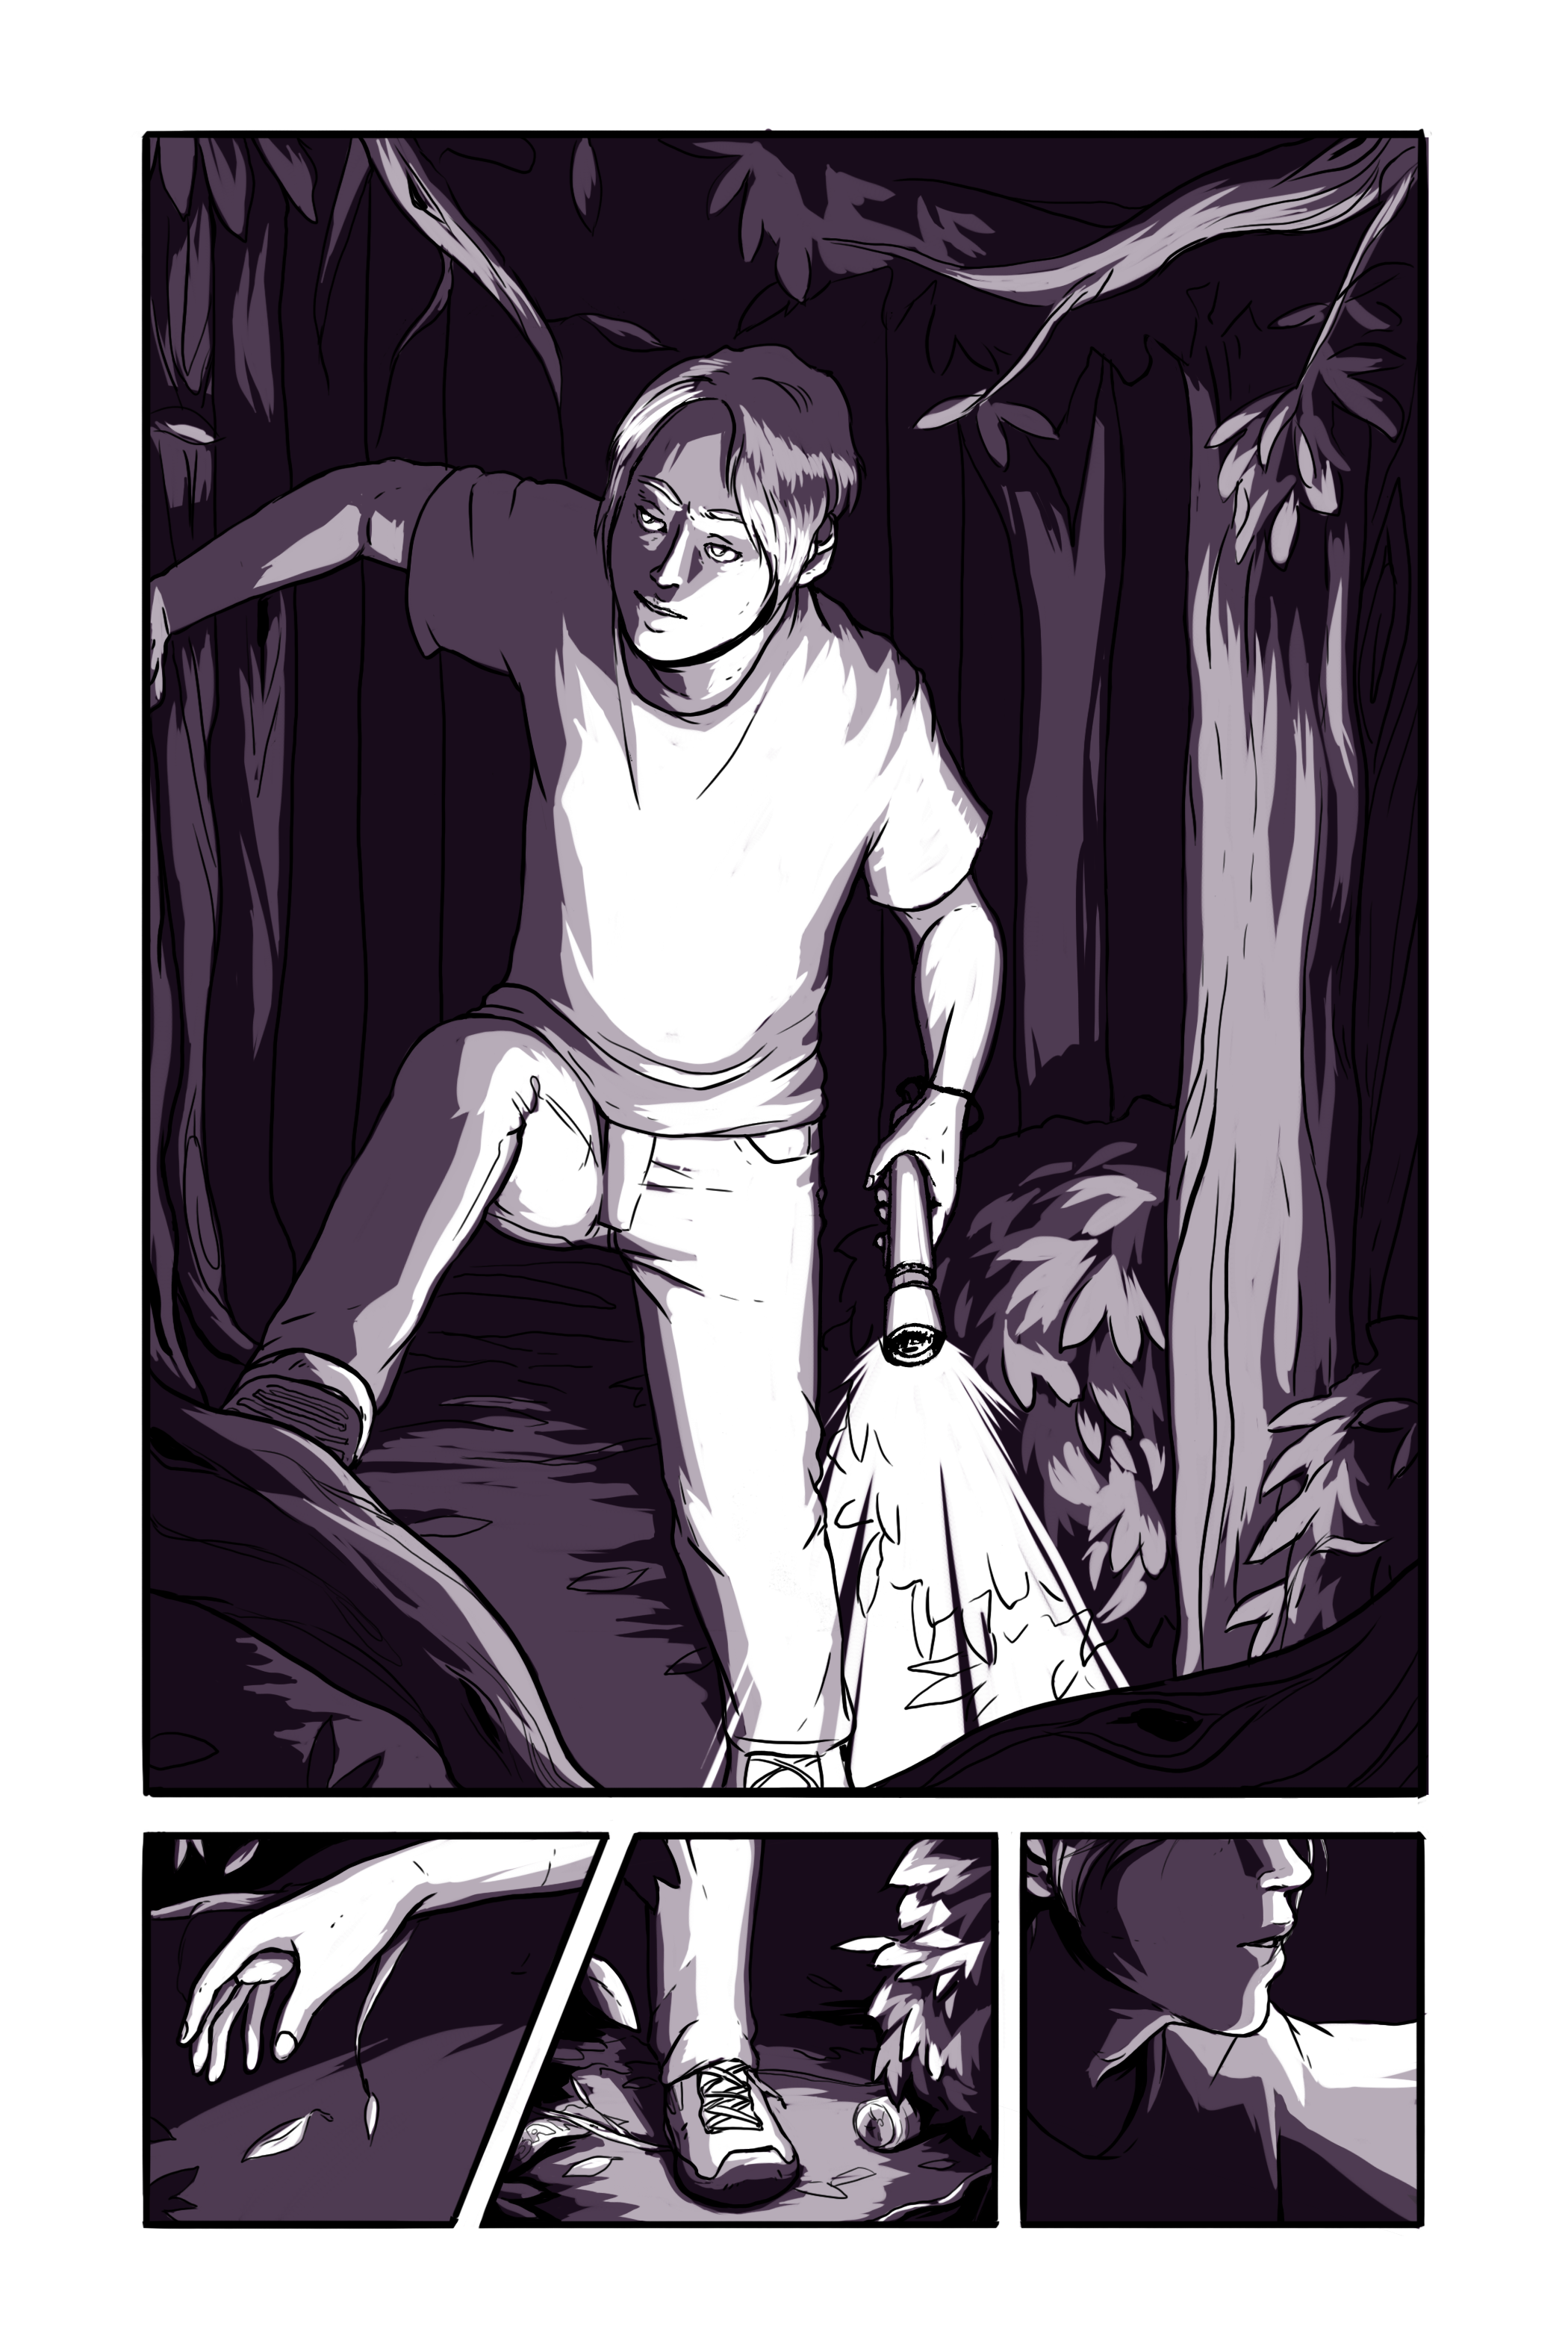 Night_Page1_SAMPLE.png